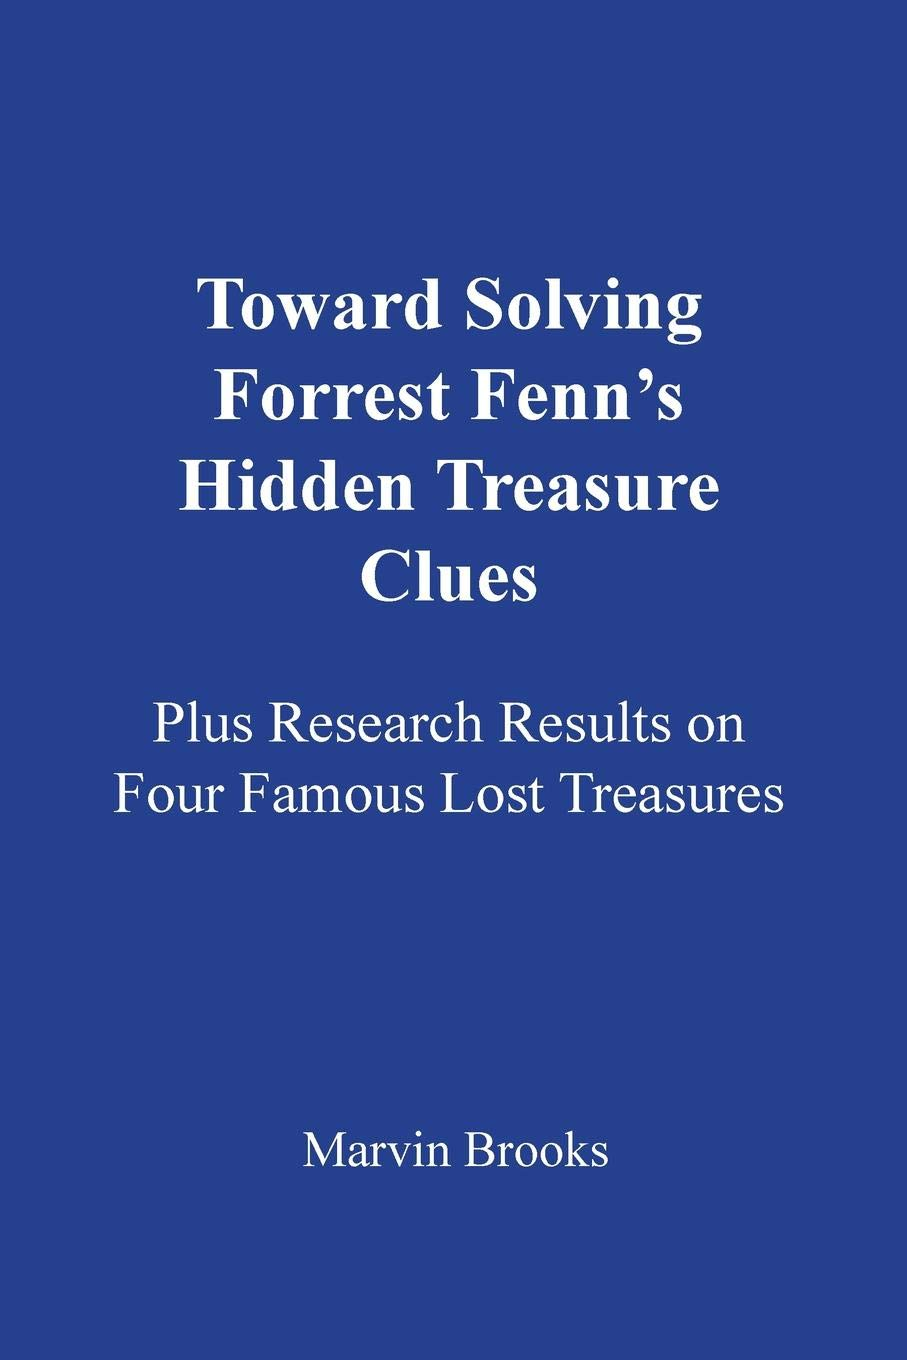 Toward Solving Forrest Fenn's Hidden Treasure Clues: Plus